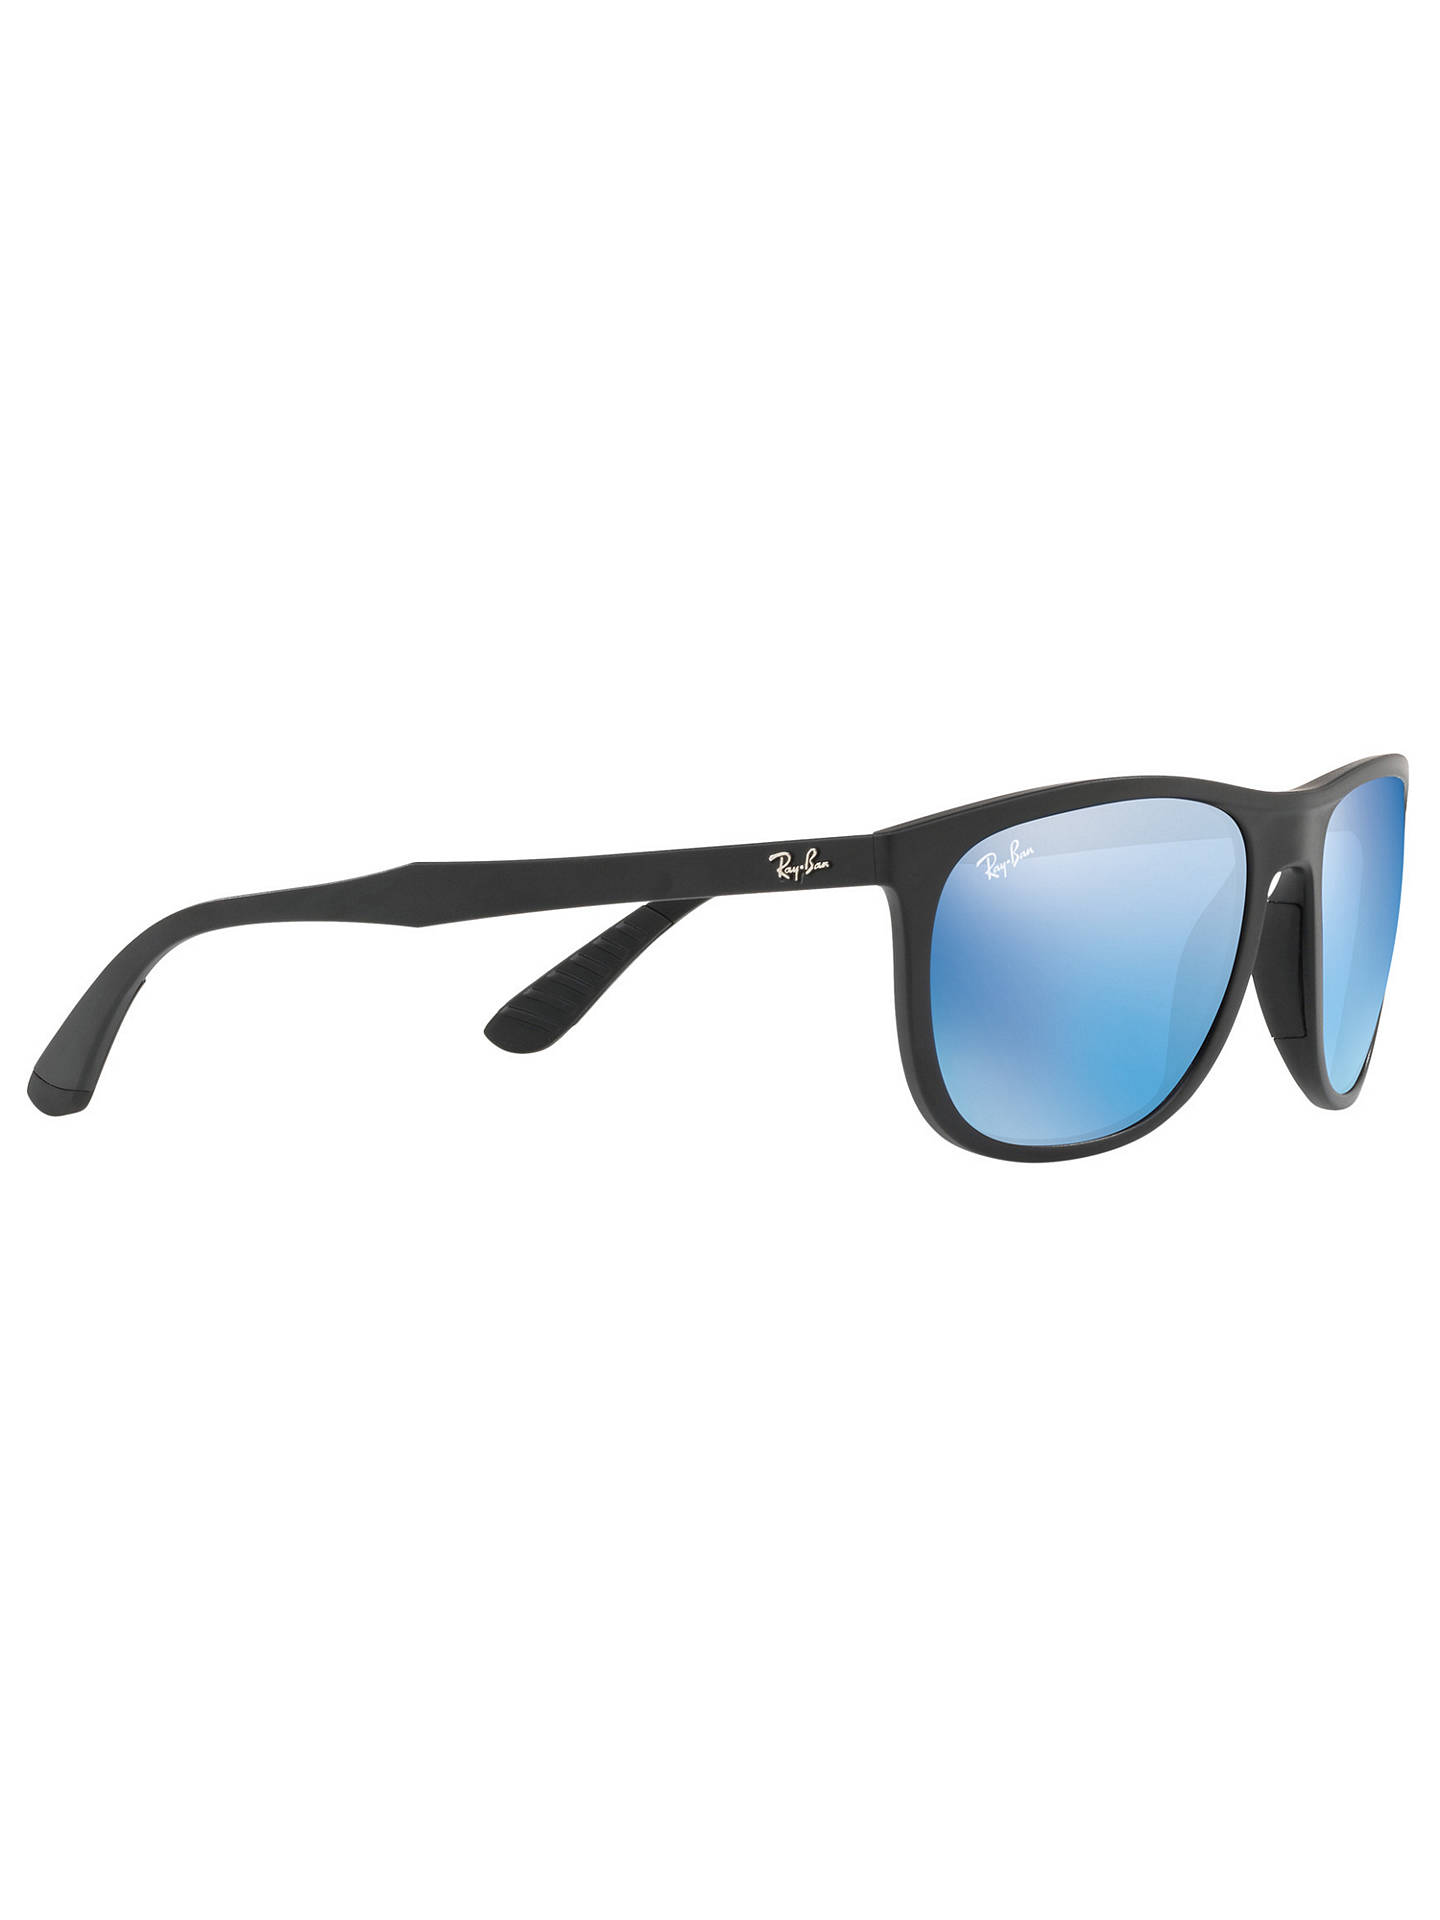 Buy Ray-Ban RB4291 Square Sunglasses, Black/Mirror Blue Online at johnlewis.com